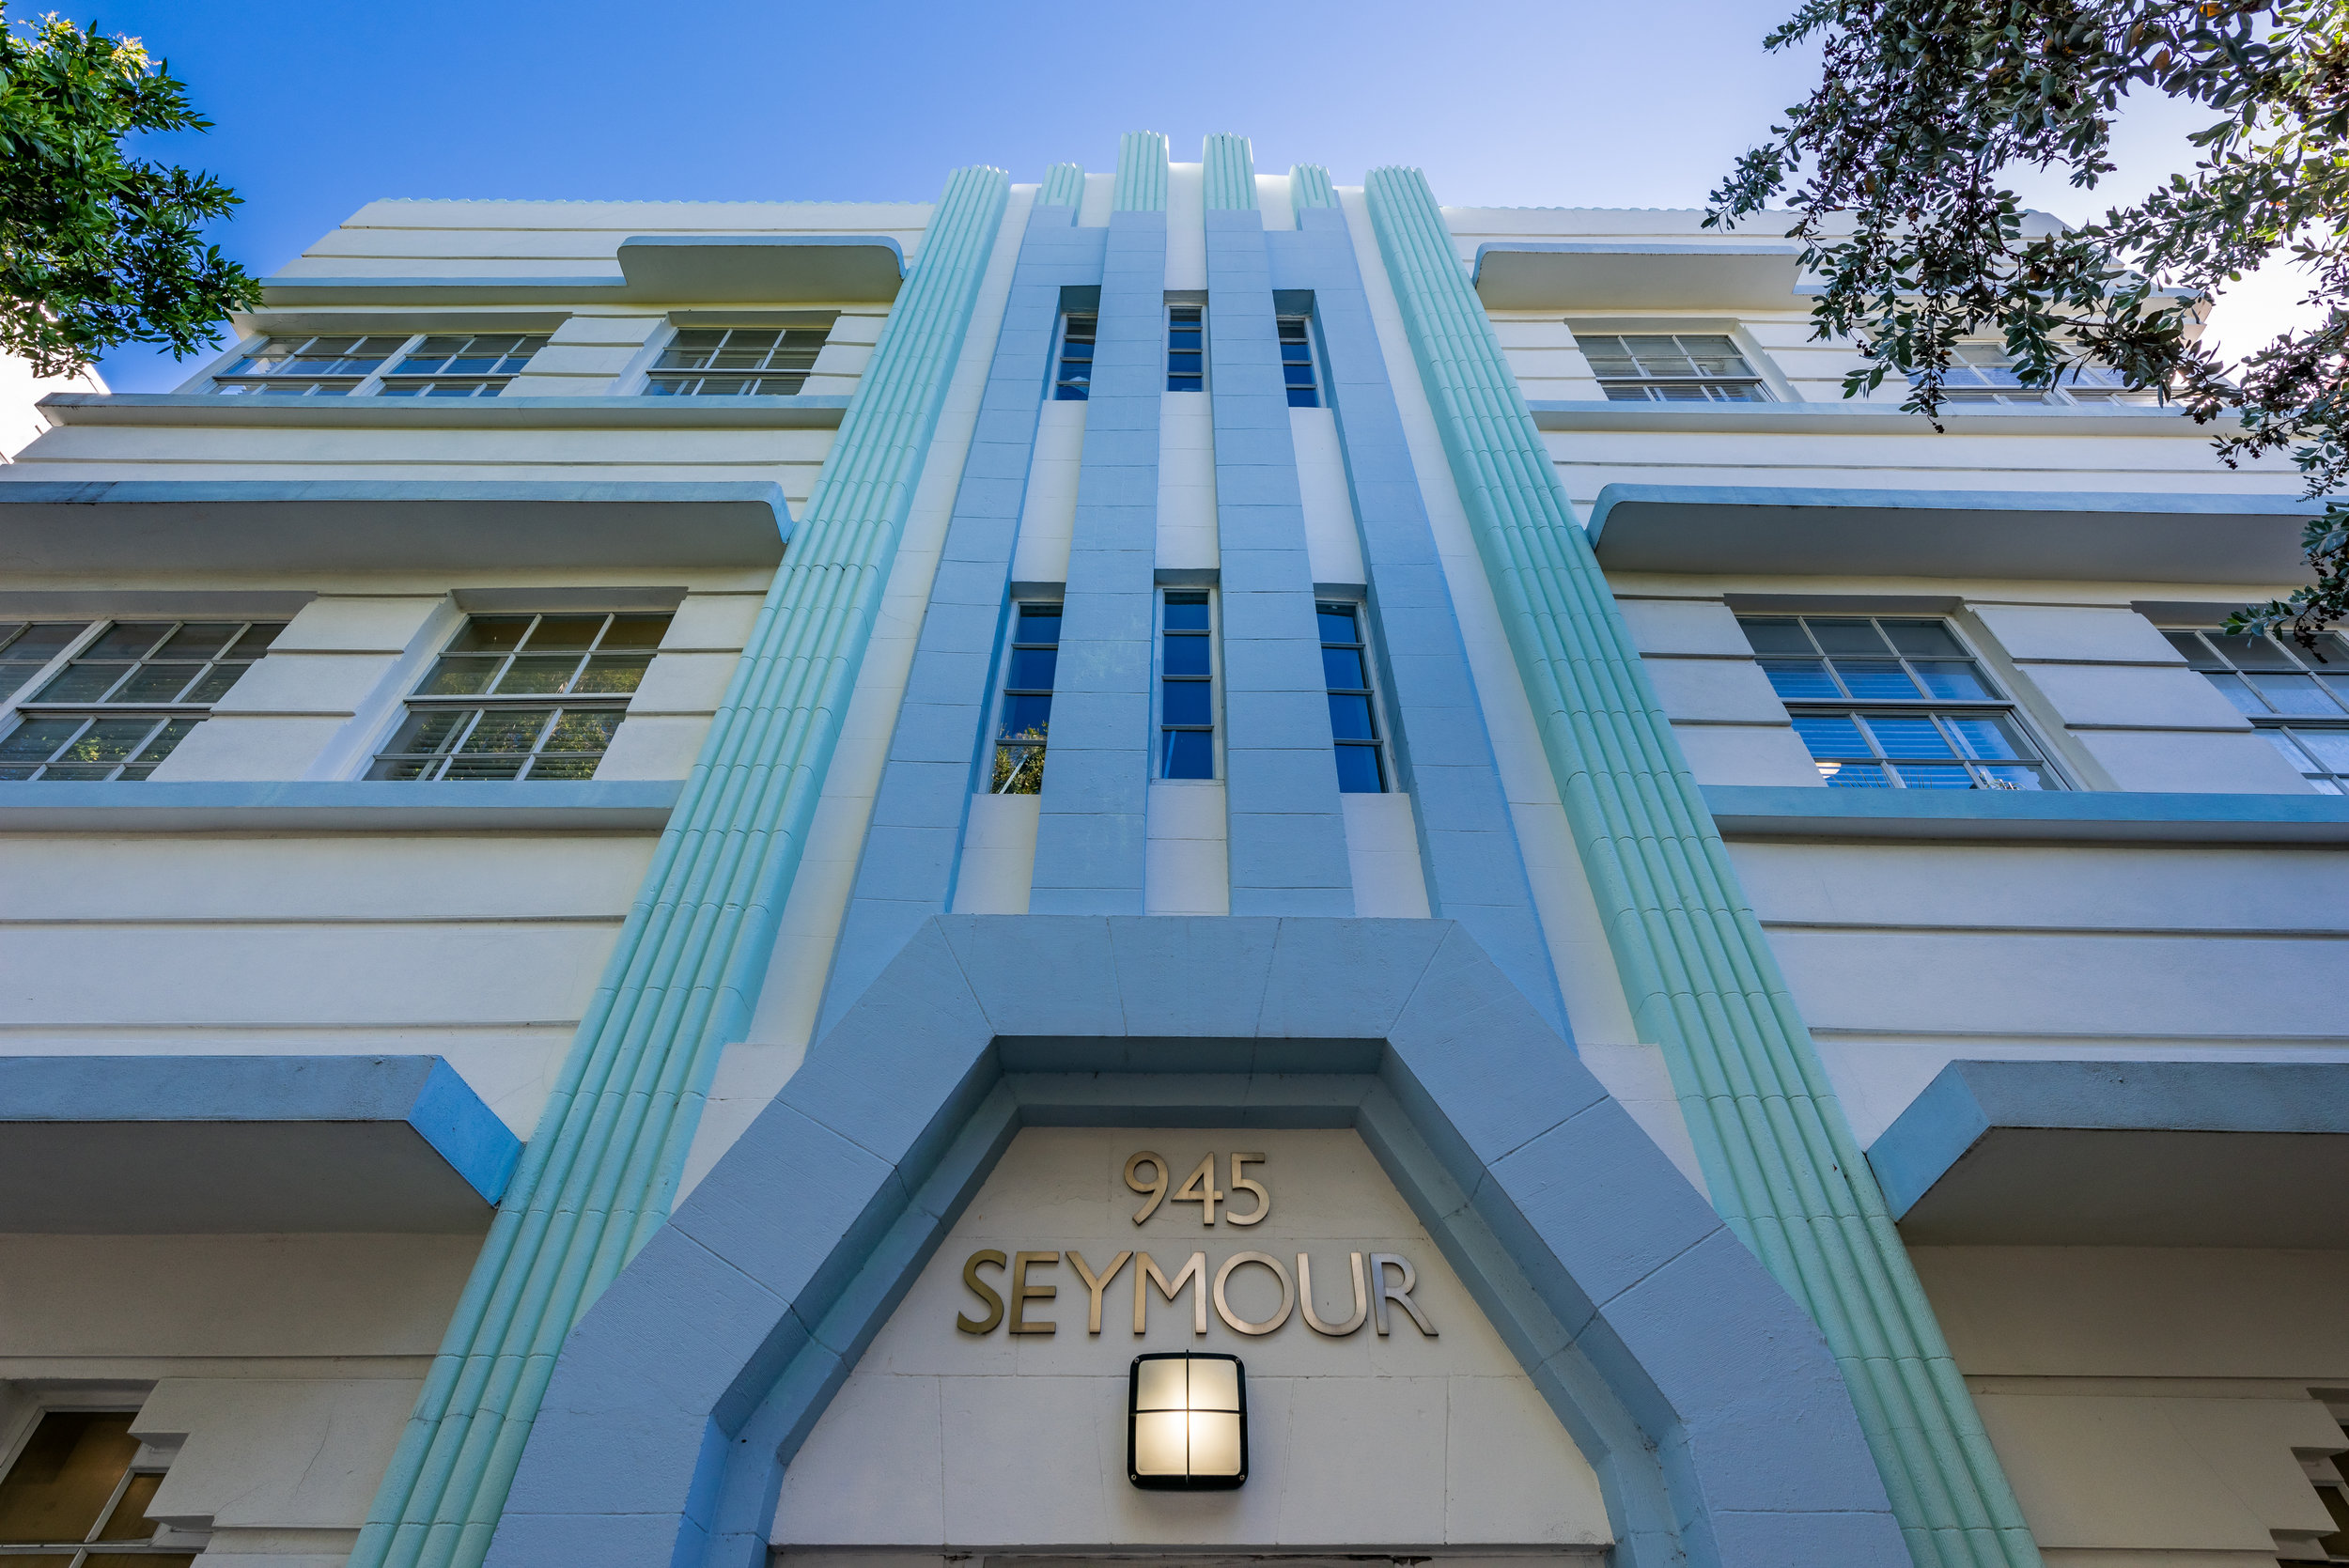 Miami Beach's Historic Seymour Hotel Designed By B. Kingston Hall Has Sold For $2.2 Million